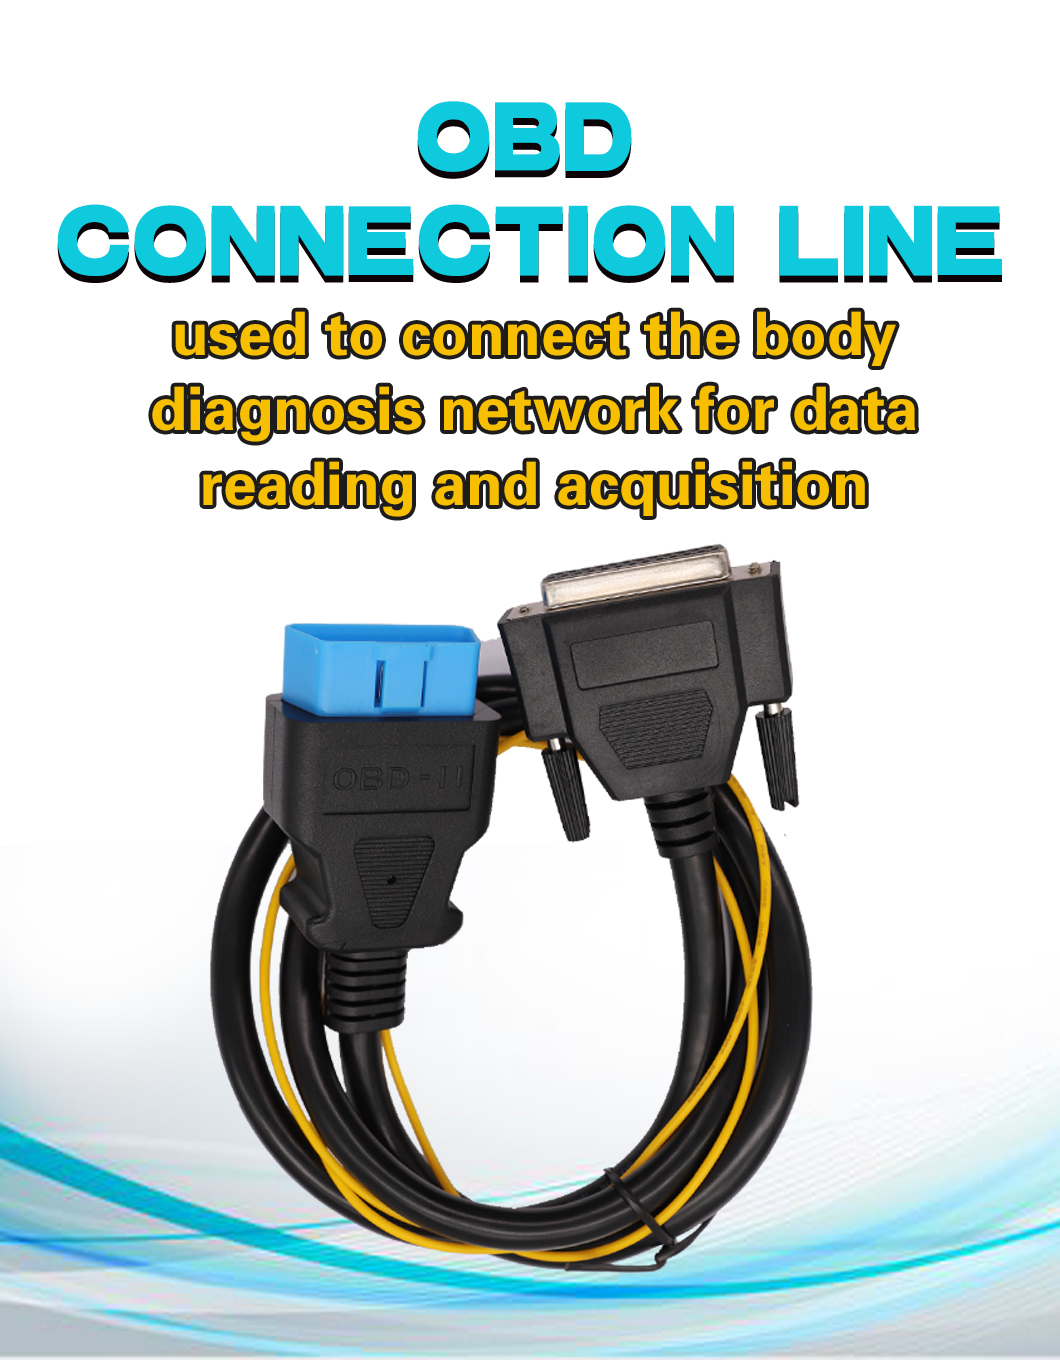 China mercedes car computer wholesale 🇨🇳 - Alibaba on nakamichi harness, oxygen sensor extension harness, dog harness, pony harness, fall protection harness, electrical harness, battery harness, safety harness, engine harness, obd0 to obd1 conversion harness, maxi-seal harness, alpine stereo harness, suspension harness, radio harness, amp bypass harness, pet harness, cable harness,